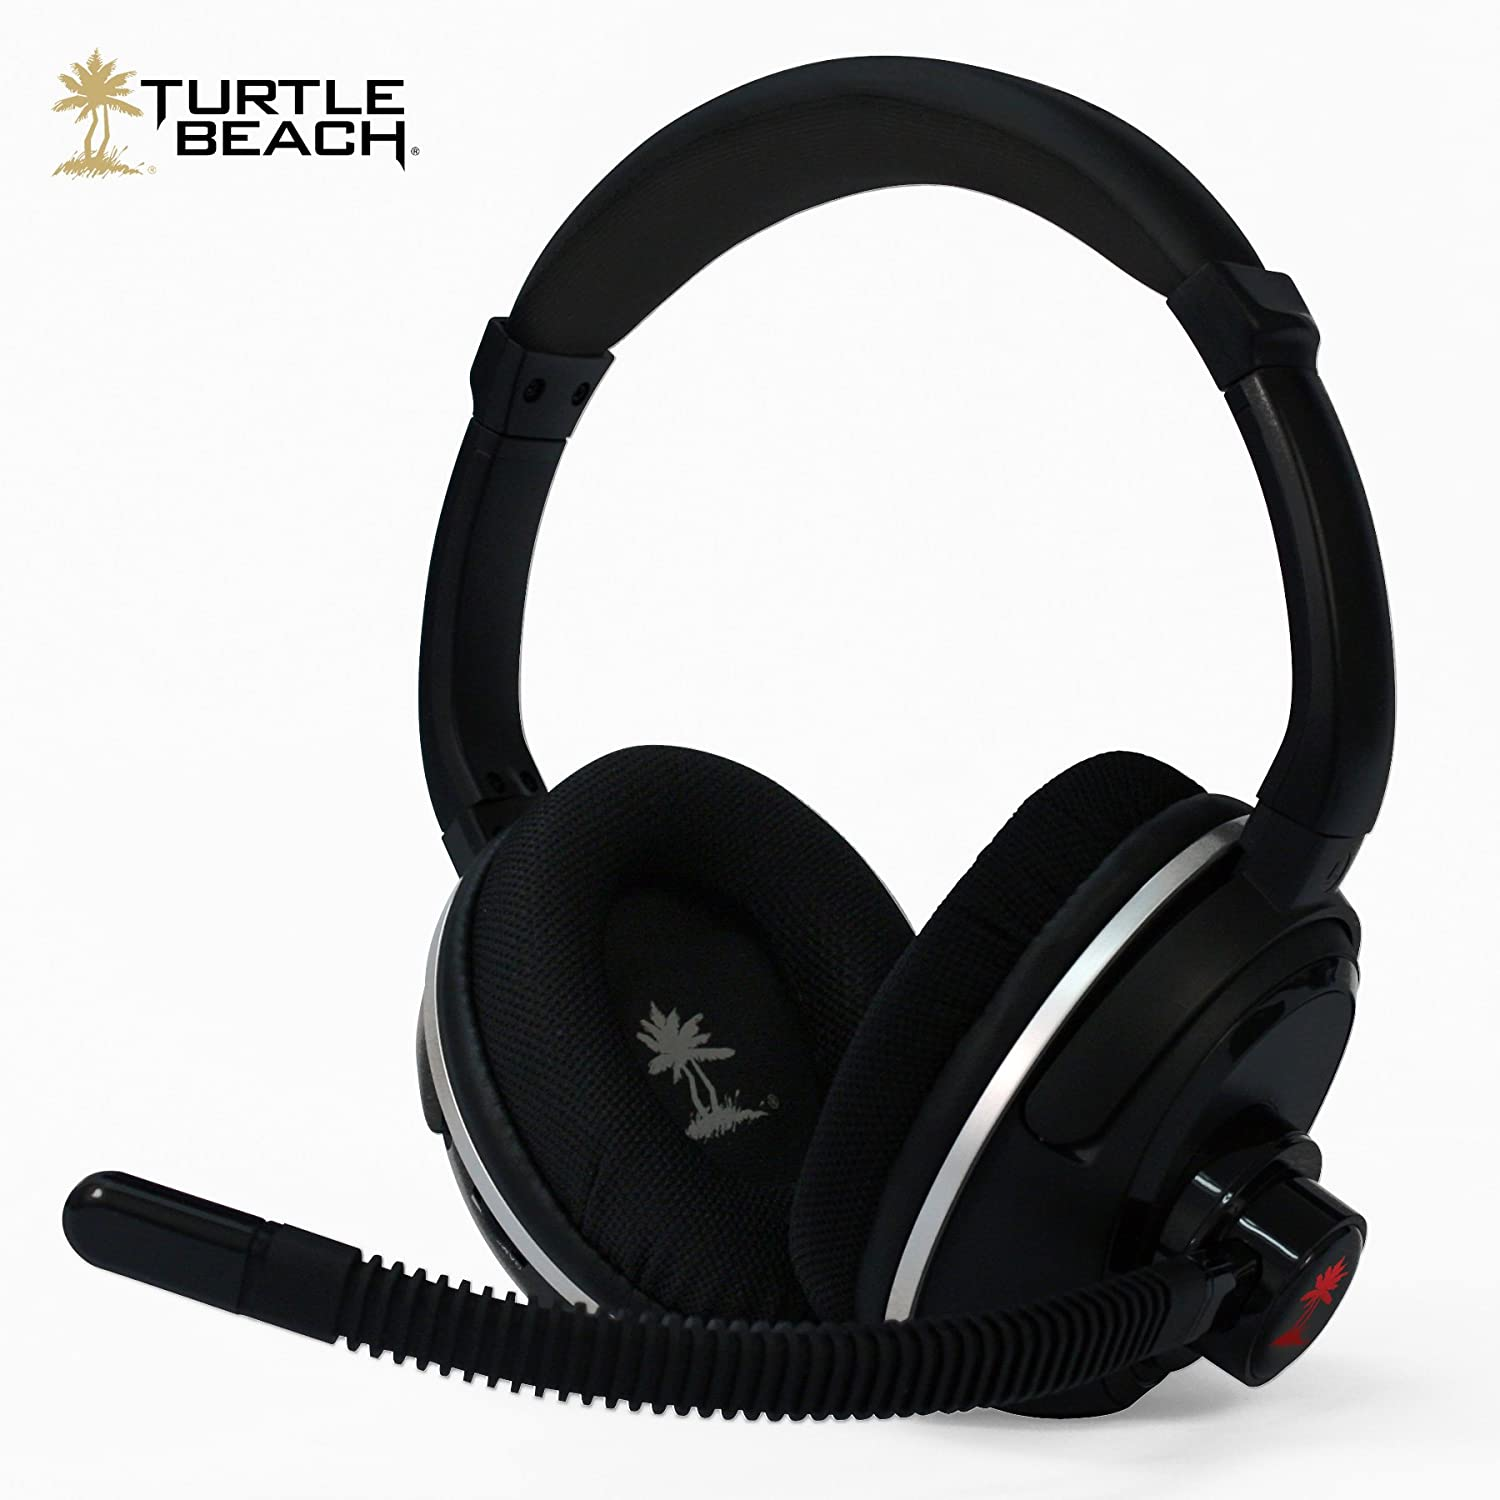 Turtle Beach Earforce PX3 - Auriculares de diadema inalámbricos para Xbox 360/PS3/PC: Amazon.es: Videojuegos